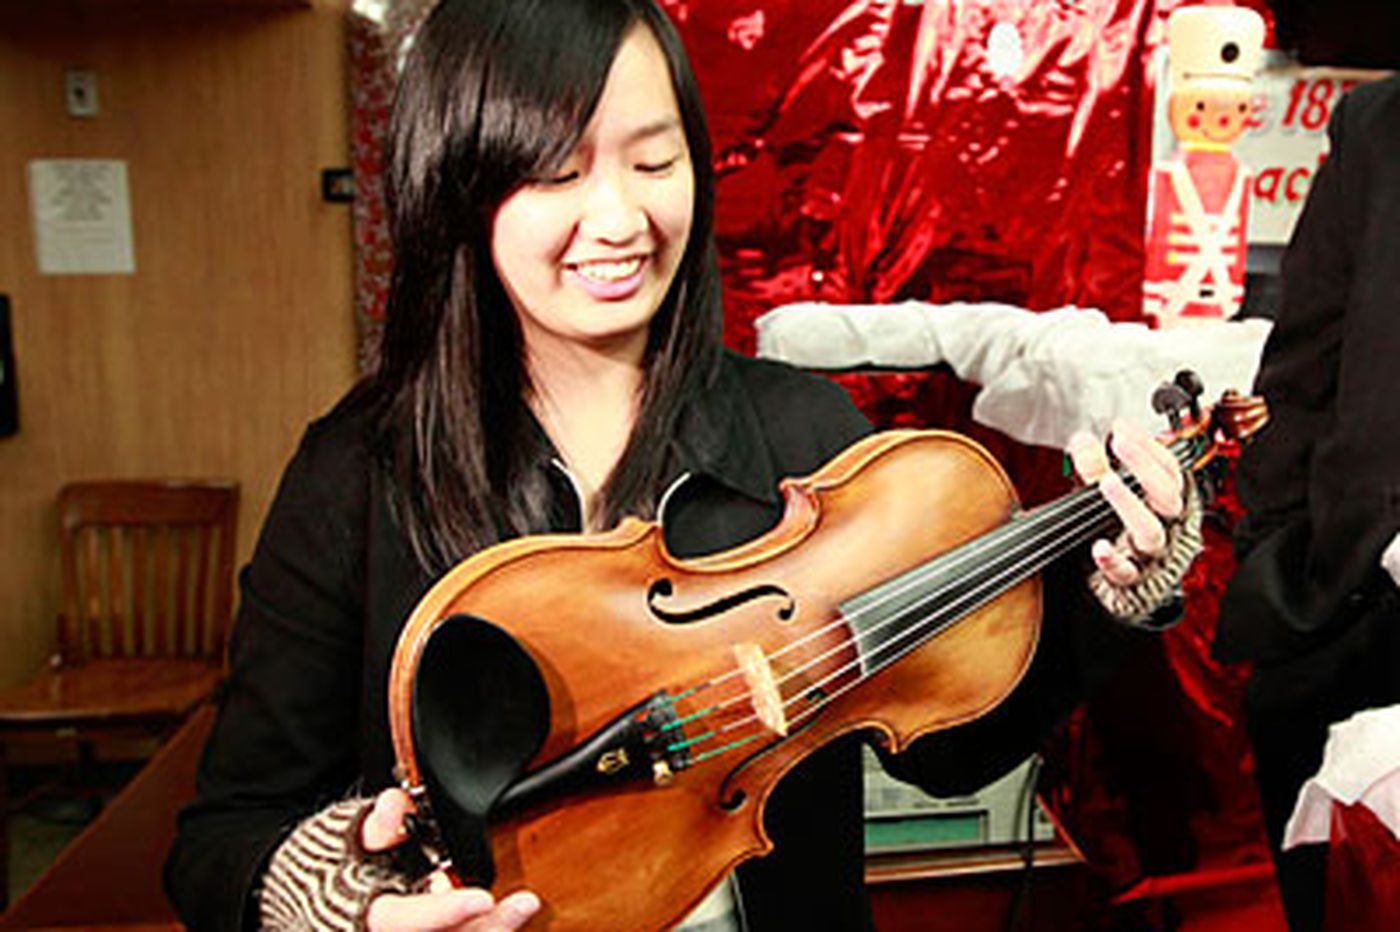 A holiday high note: $170,000 violin lost and found